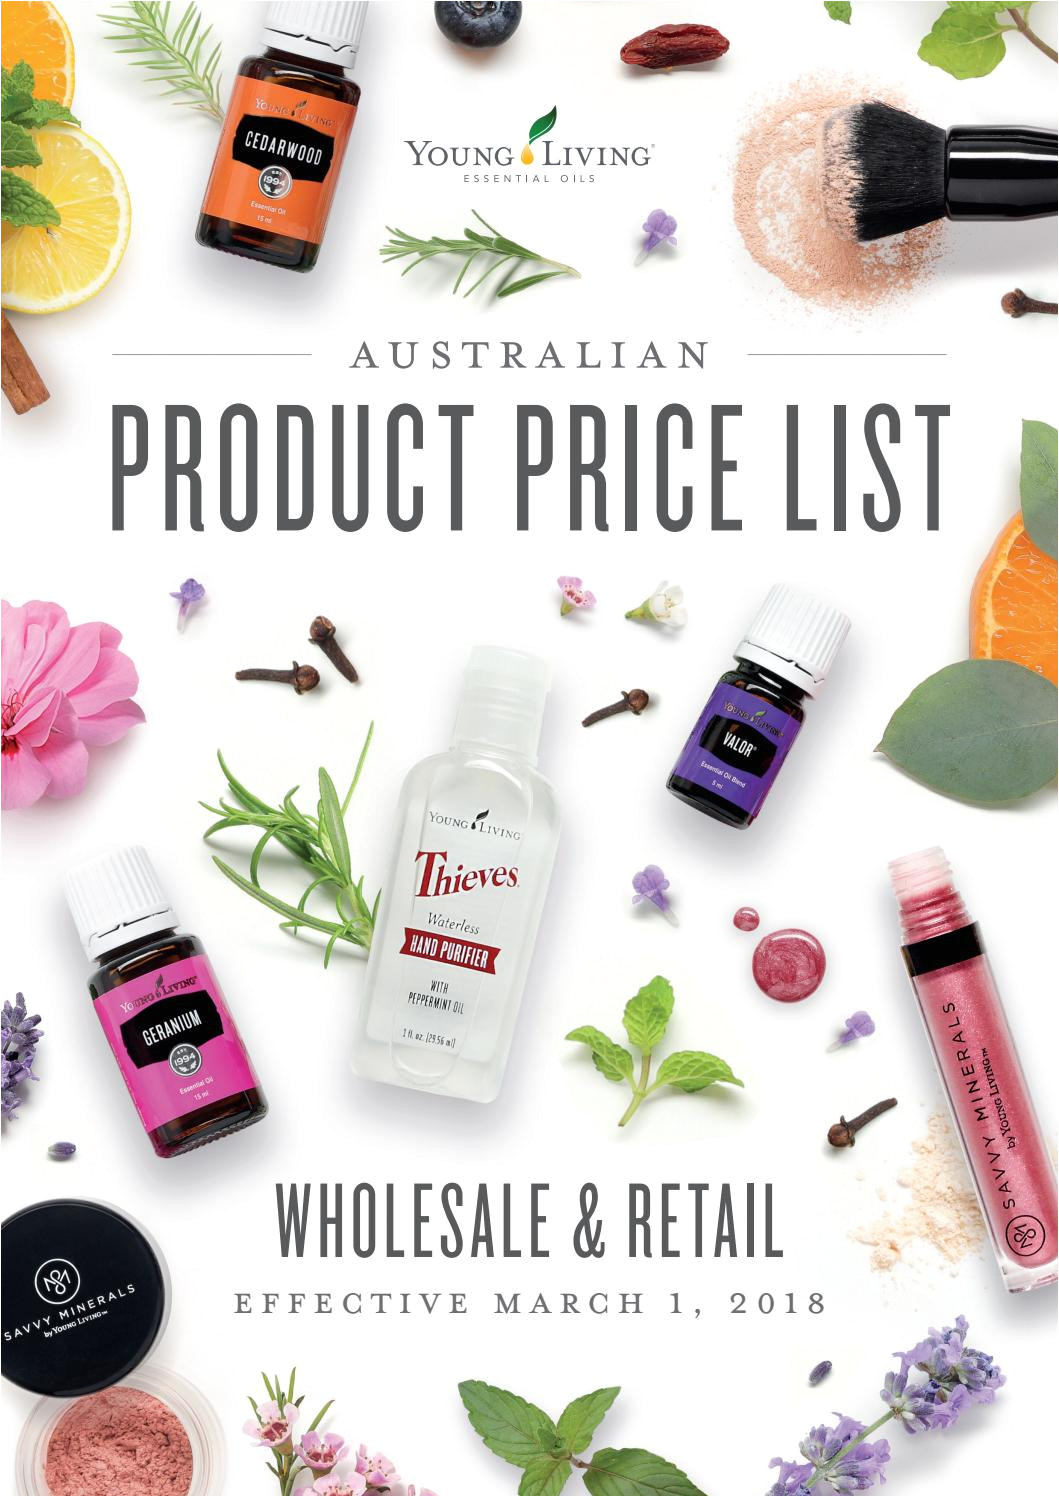 australian product price list march 1 2018 by young living essential oils australia new zealand issuu